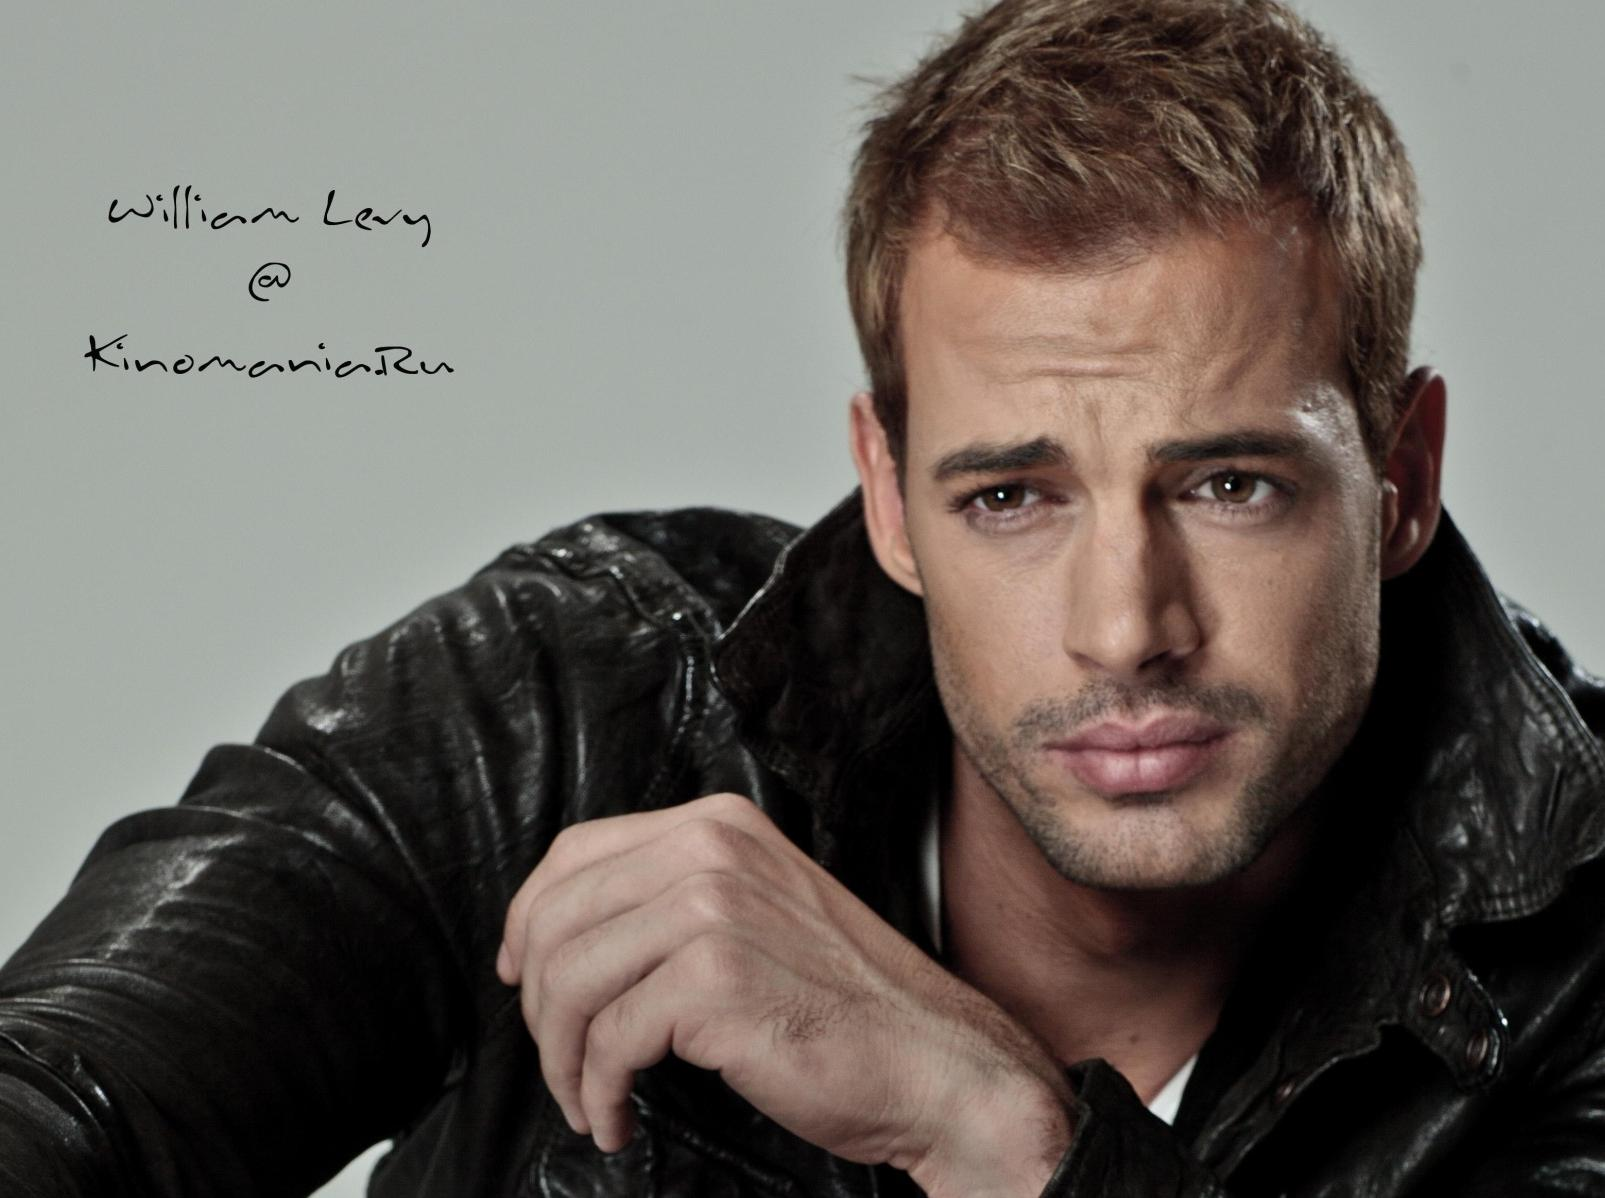 Related Pictures william levy wallpaper 1280x800 1605x1198